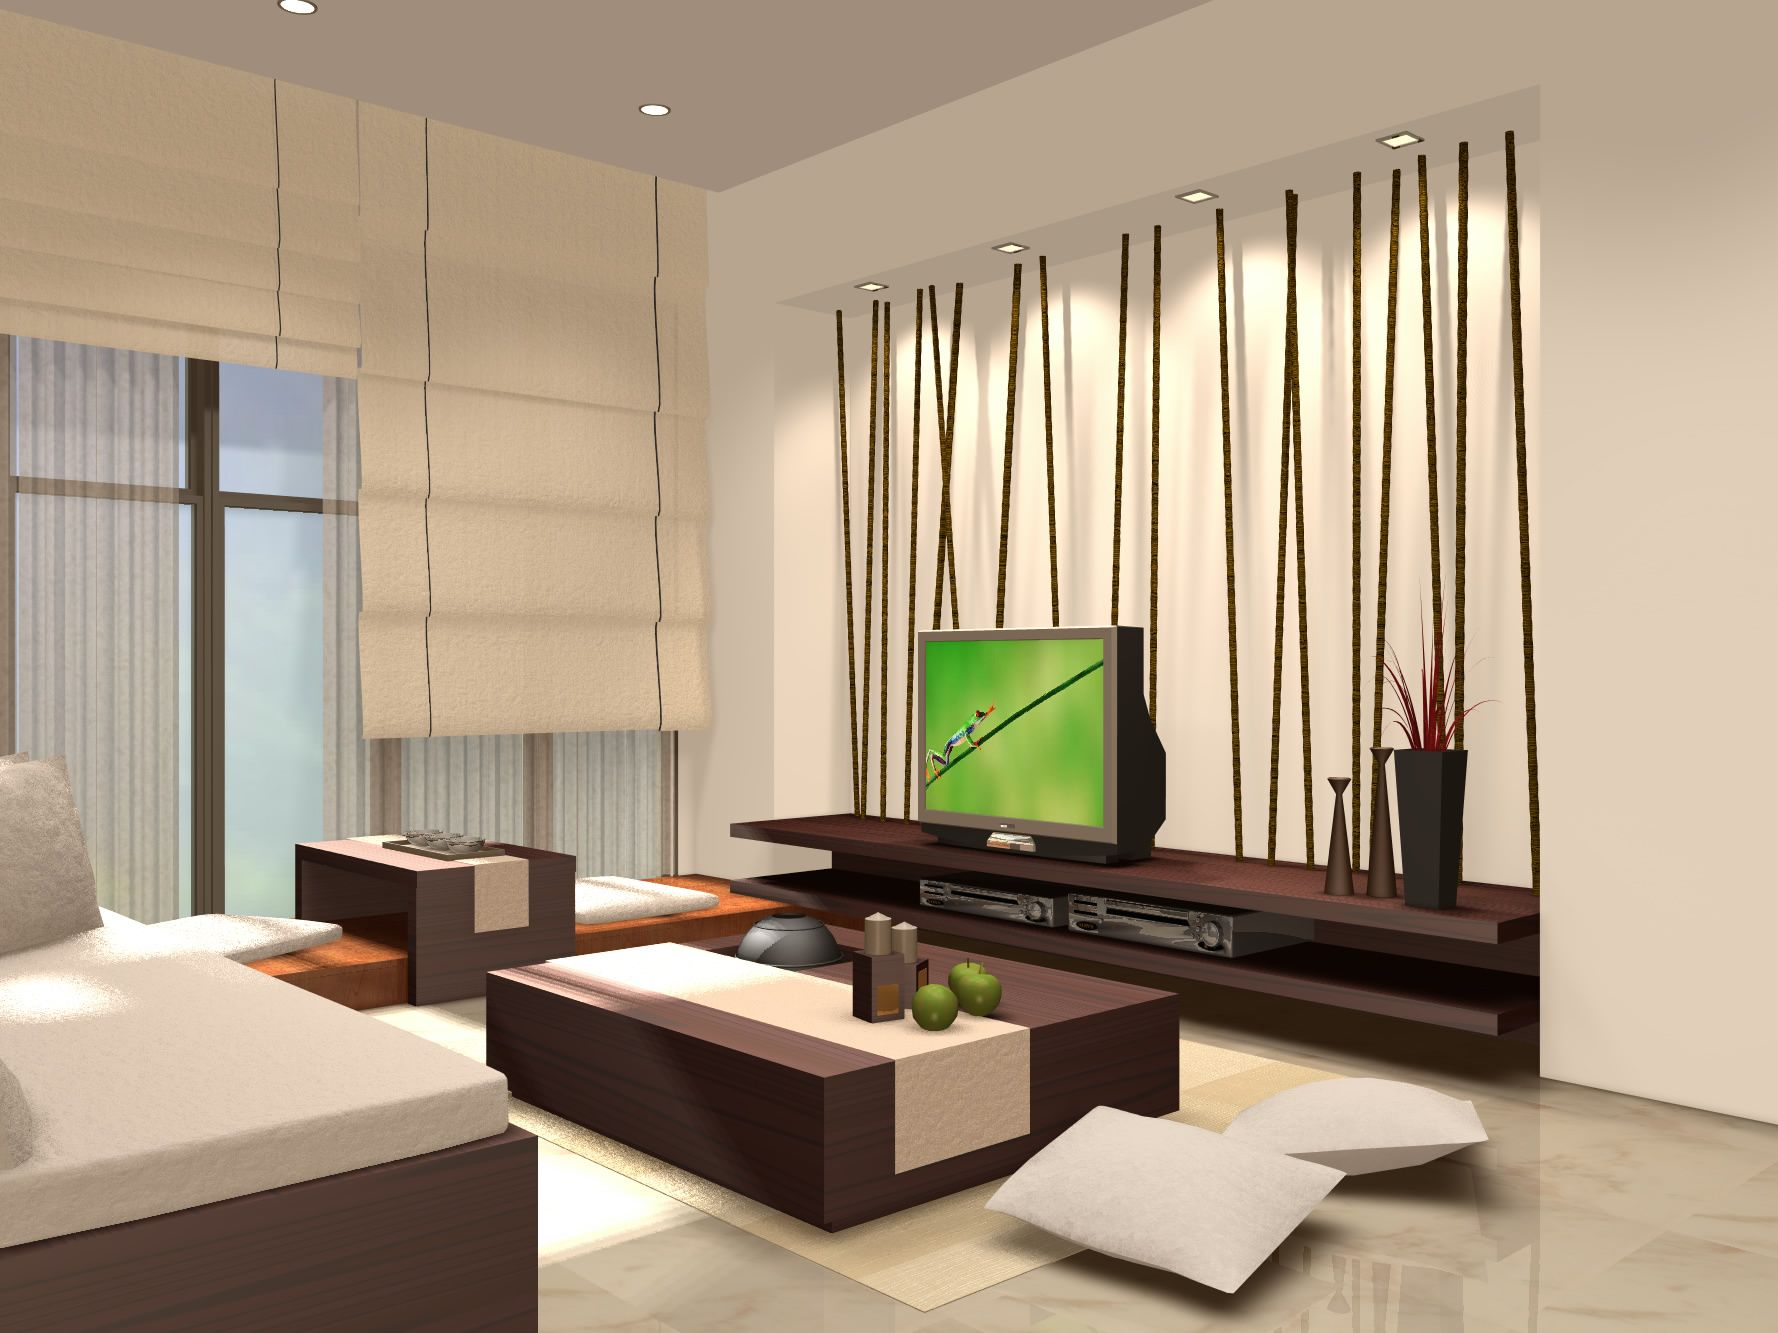 Zen interior design zen interior style and zen interior design